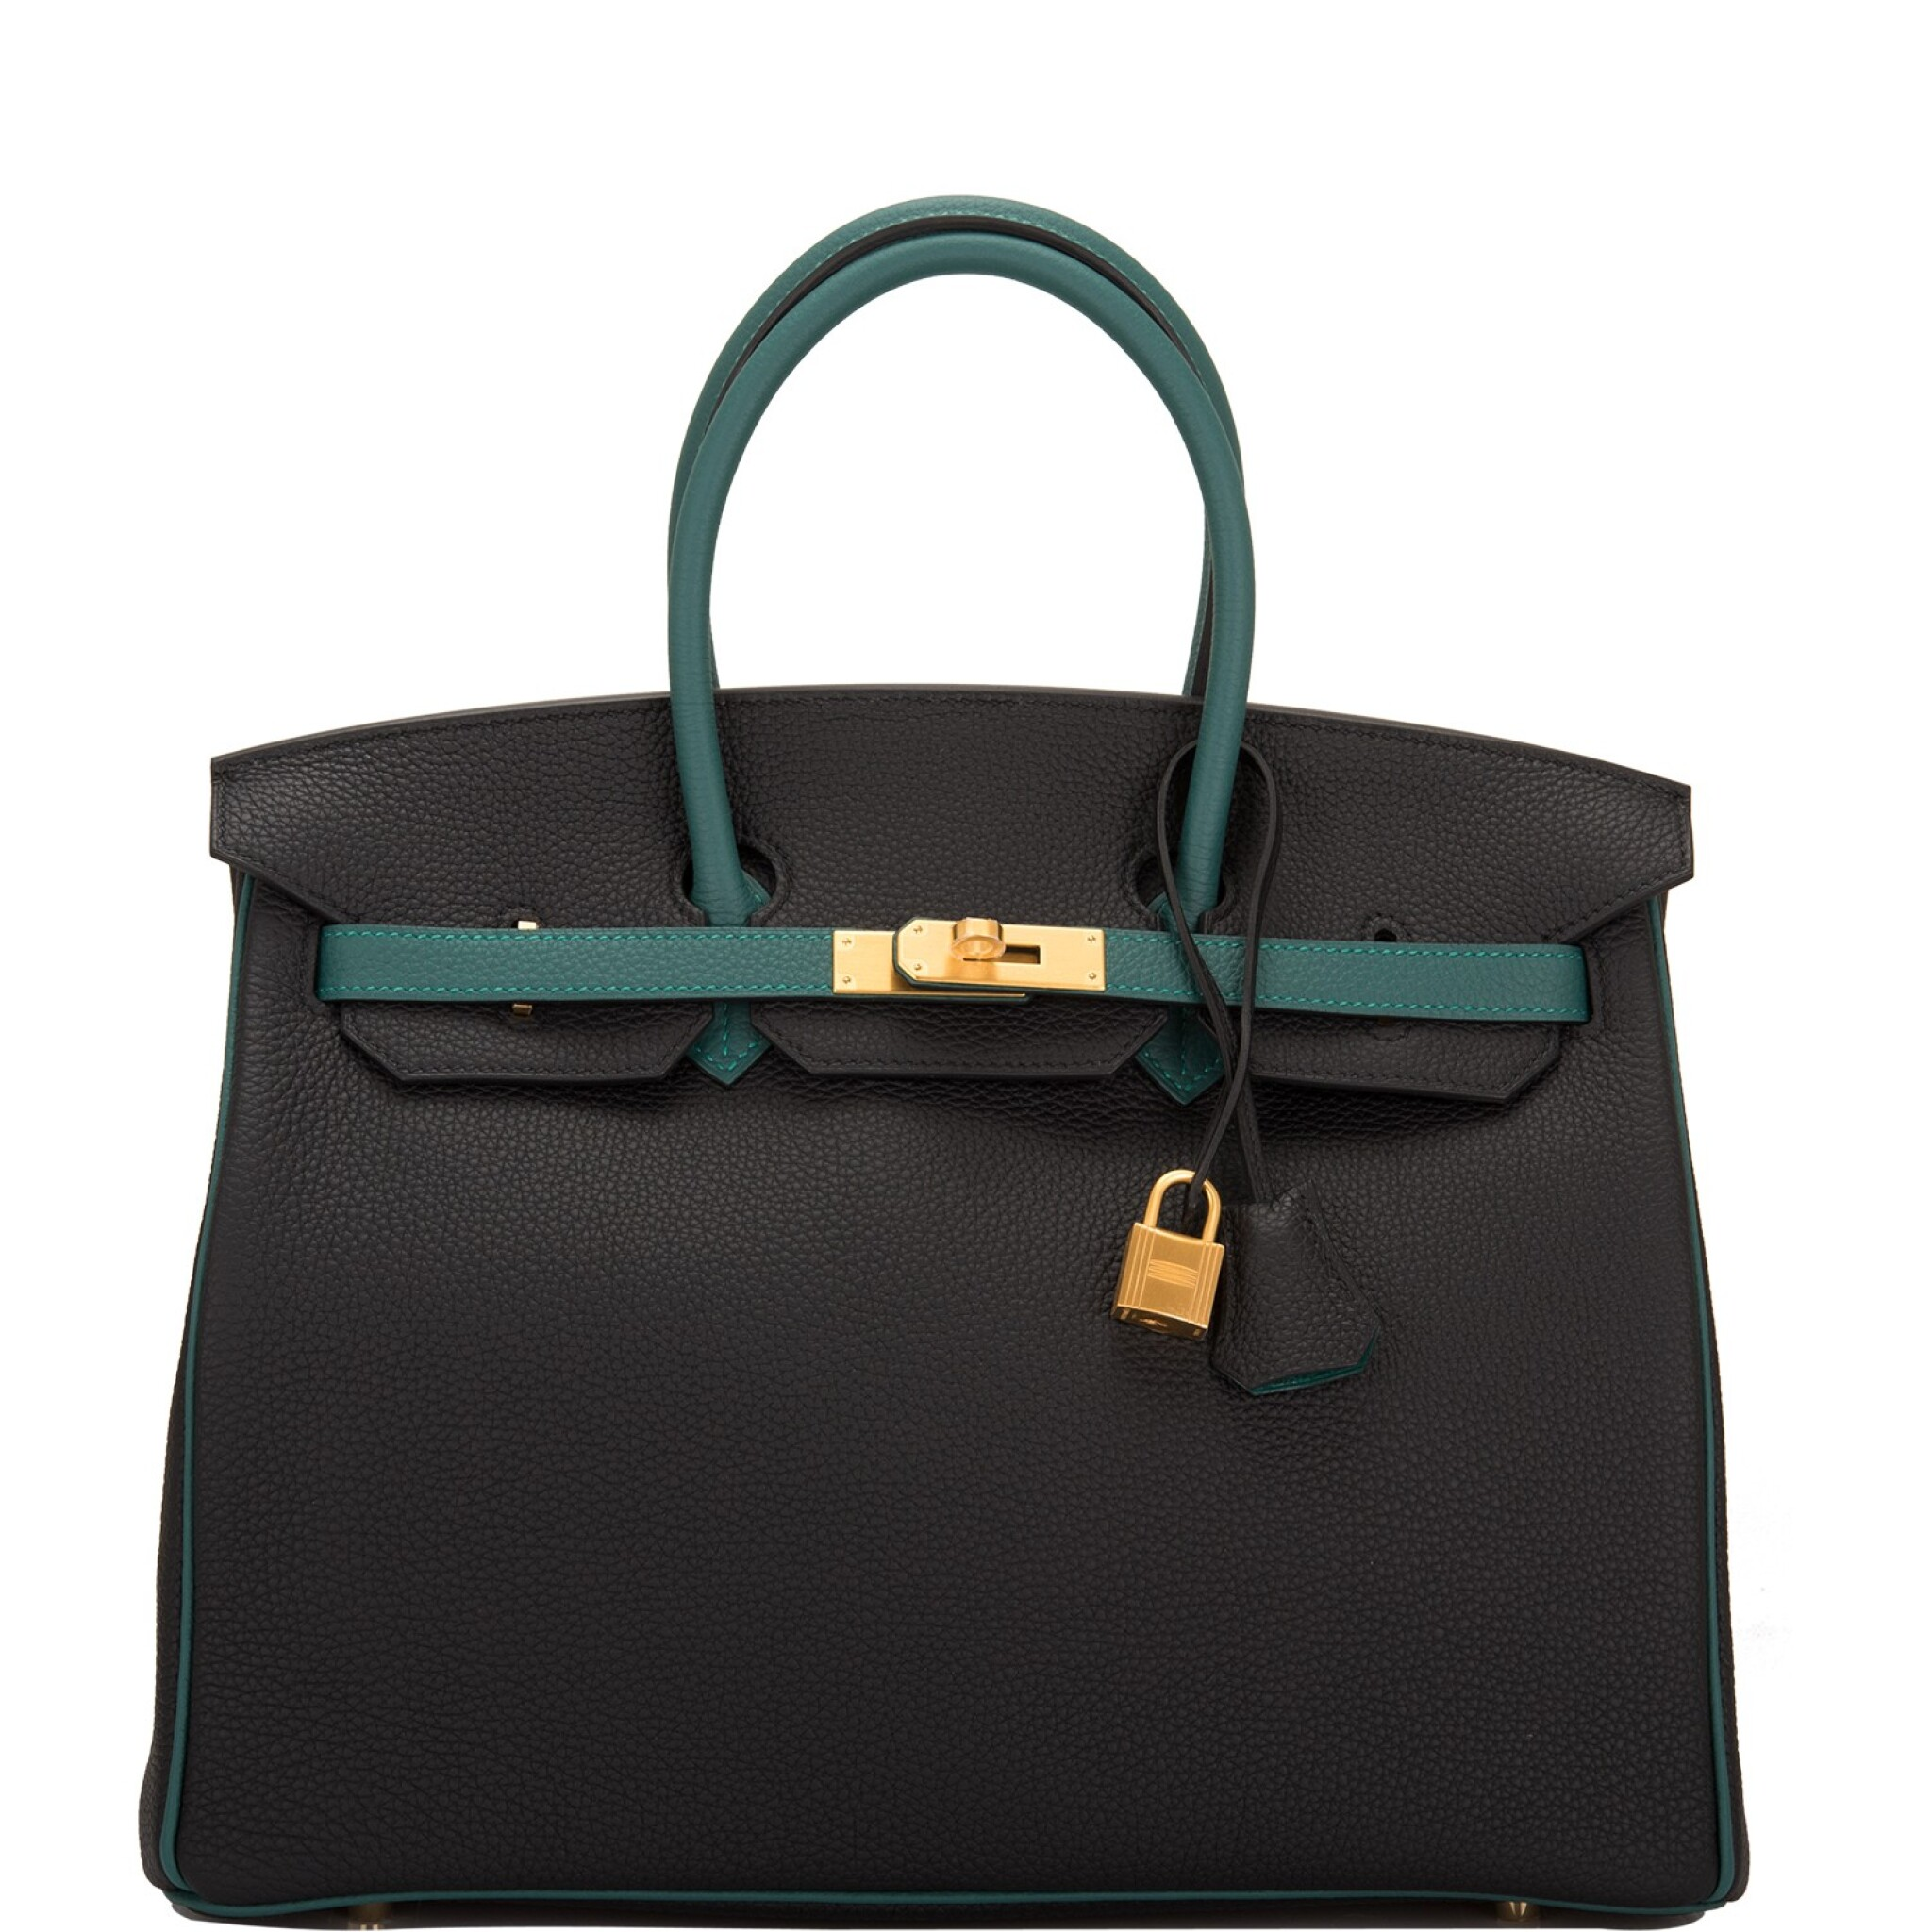 View full screen - View 1 of Lot 31. Hermès Special Order Bicolor Black and Malachite Togo Birkin 35cm BGHW.